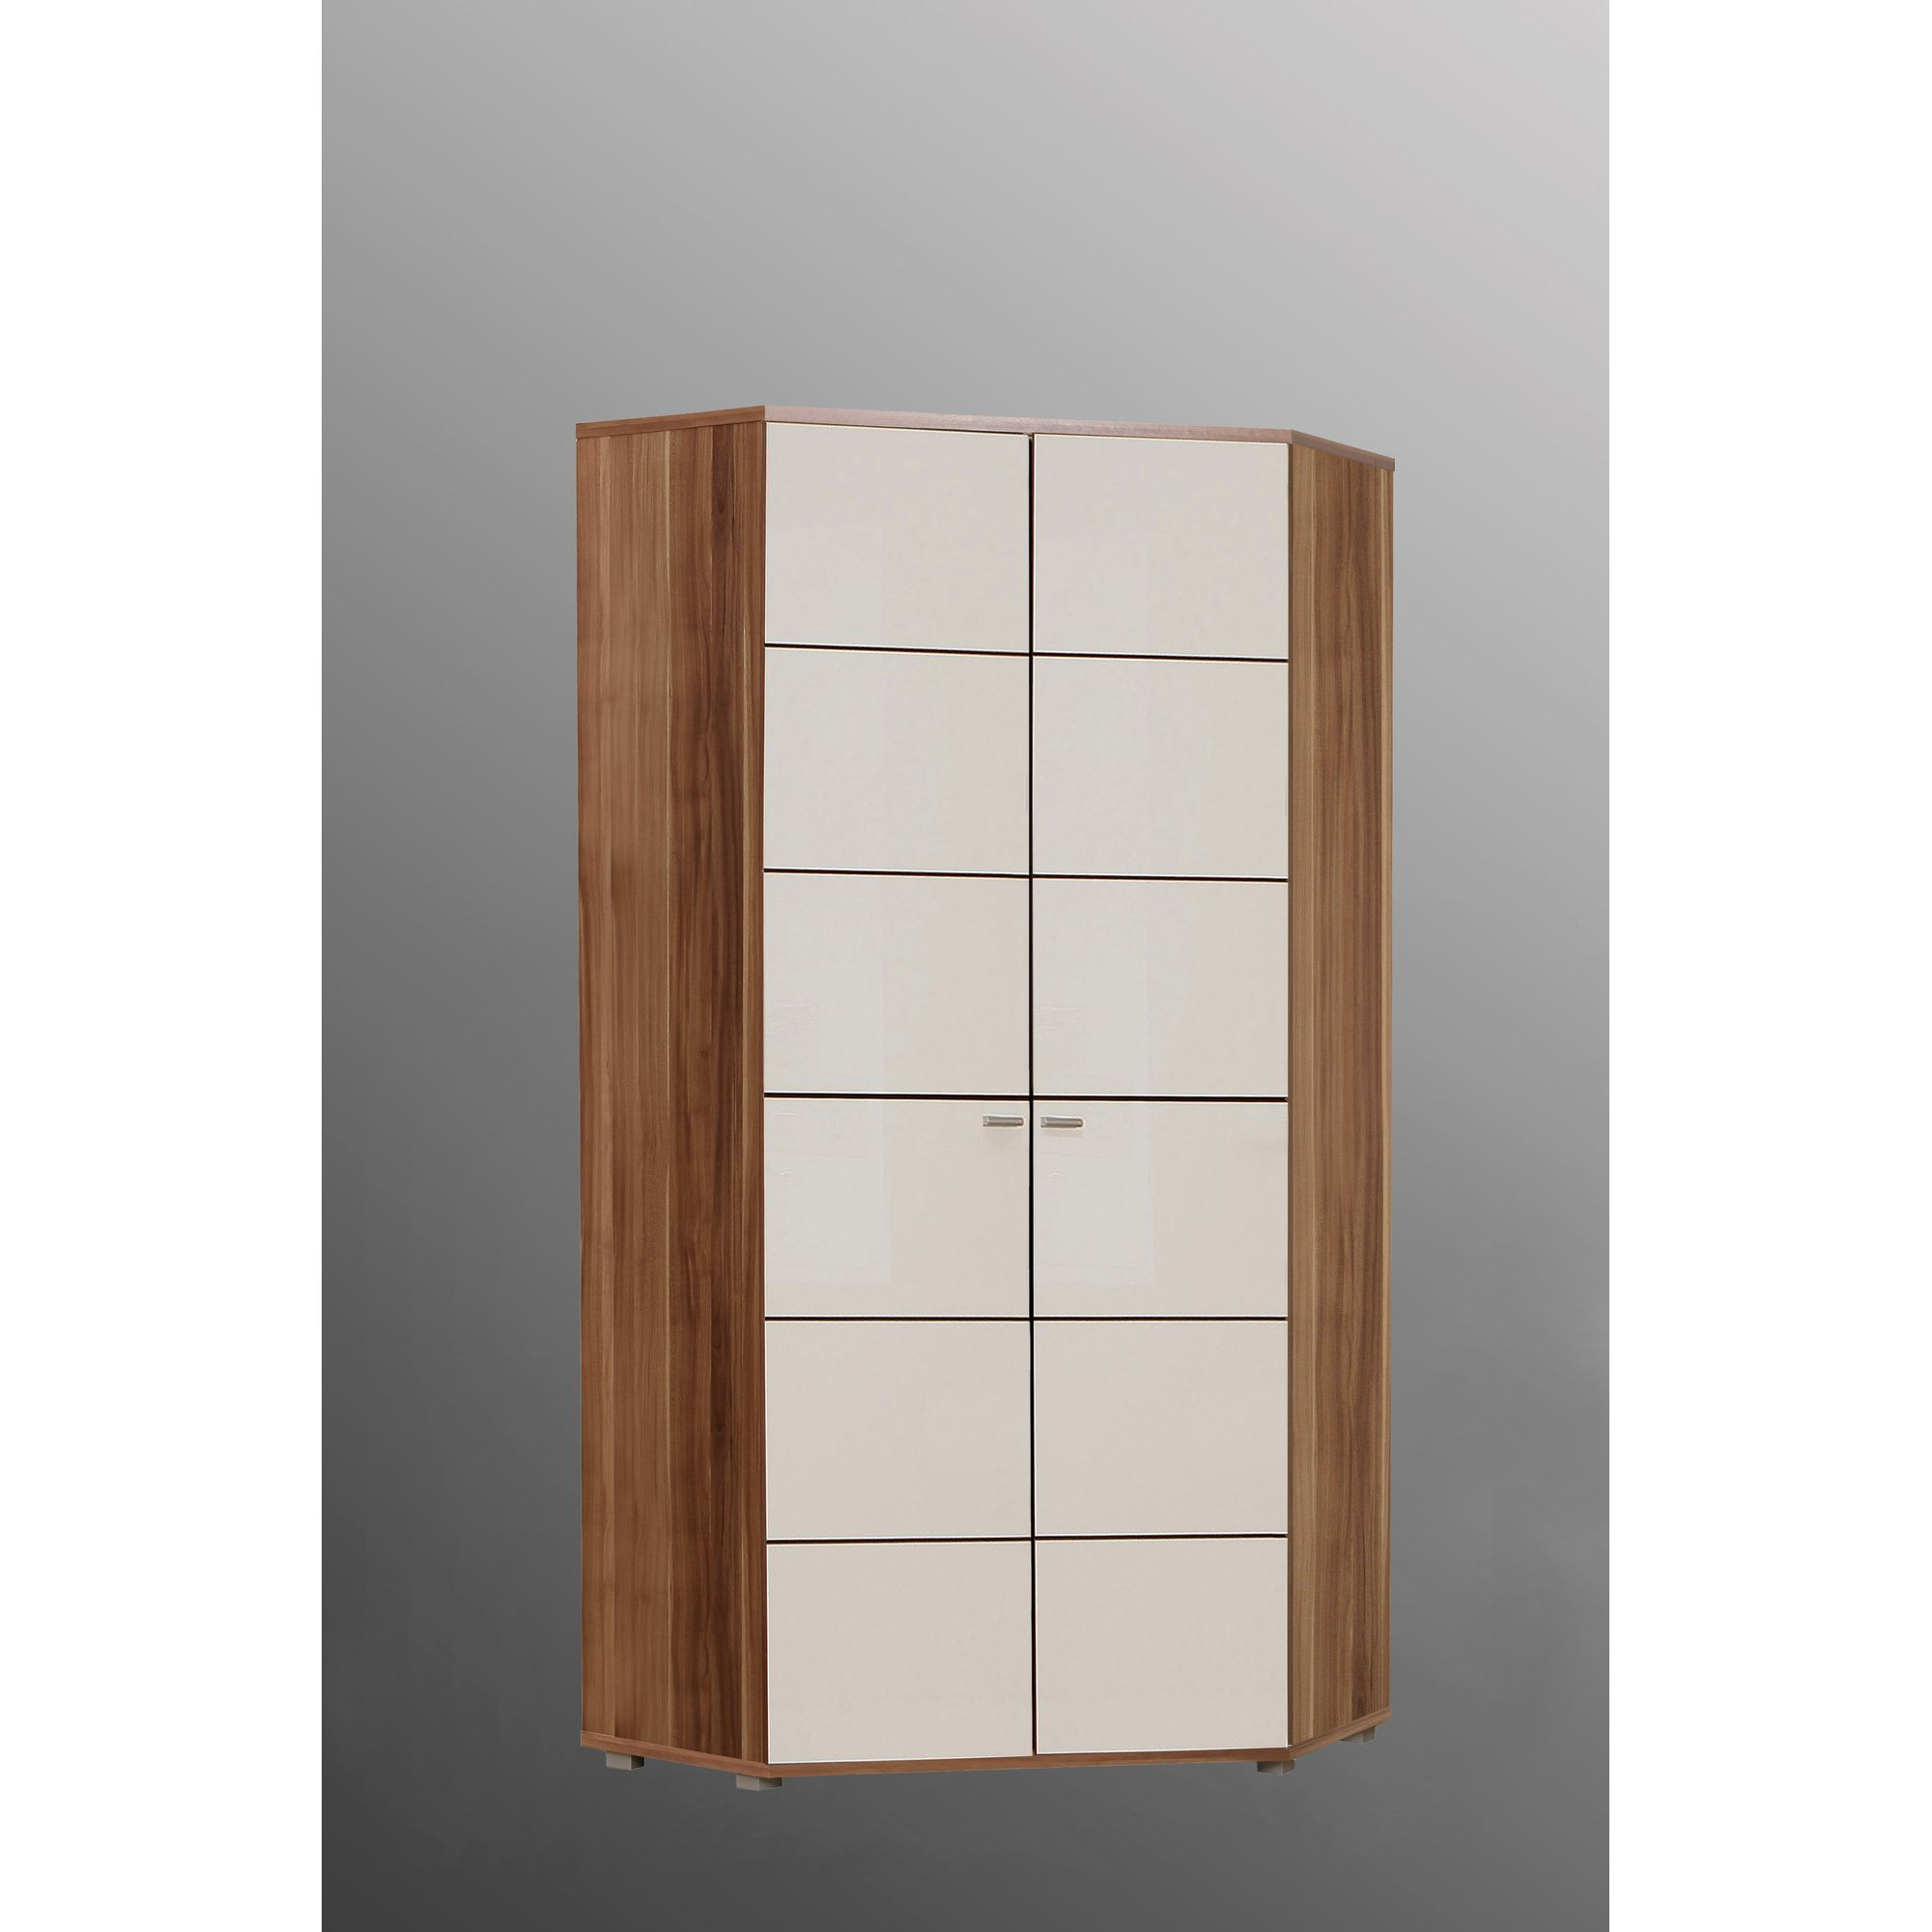 Ideal Furniture Anemone Corner Wardrobe - Walnut White Gloss at Tesco Direct